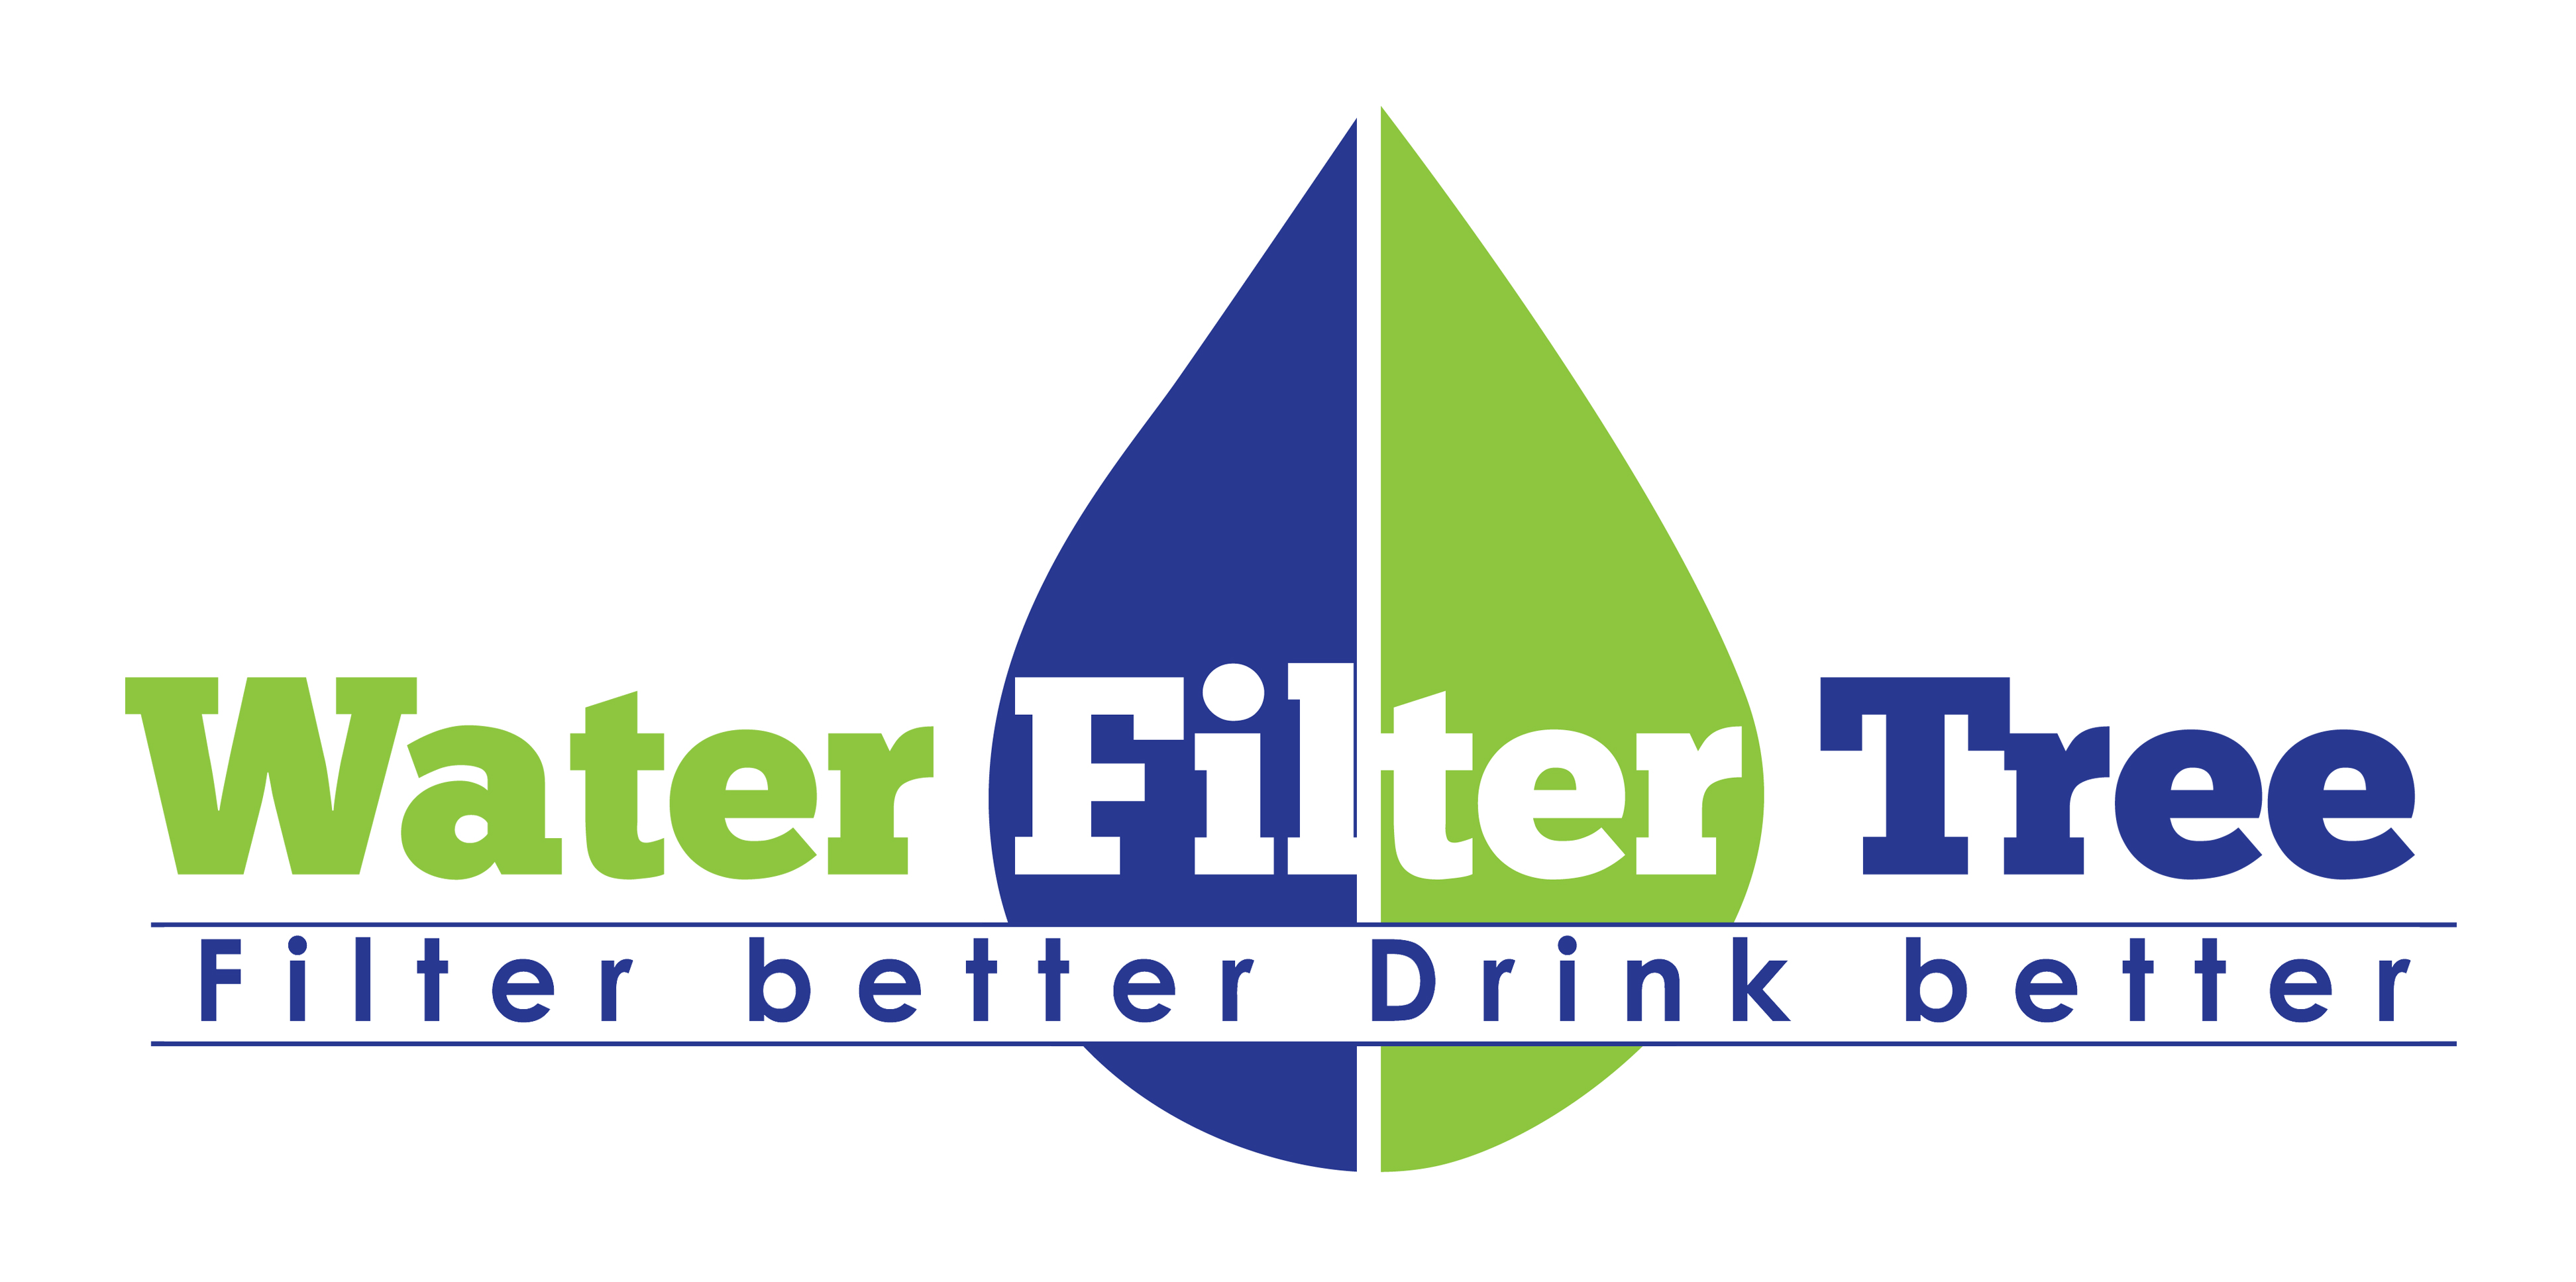 manufacturer of refrigerator water filter, inline water filter, ice maker filter and others.